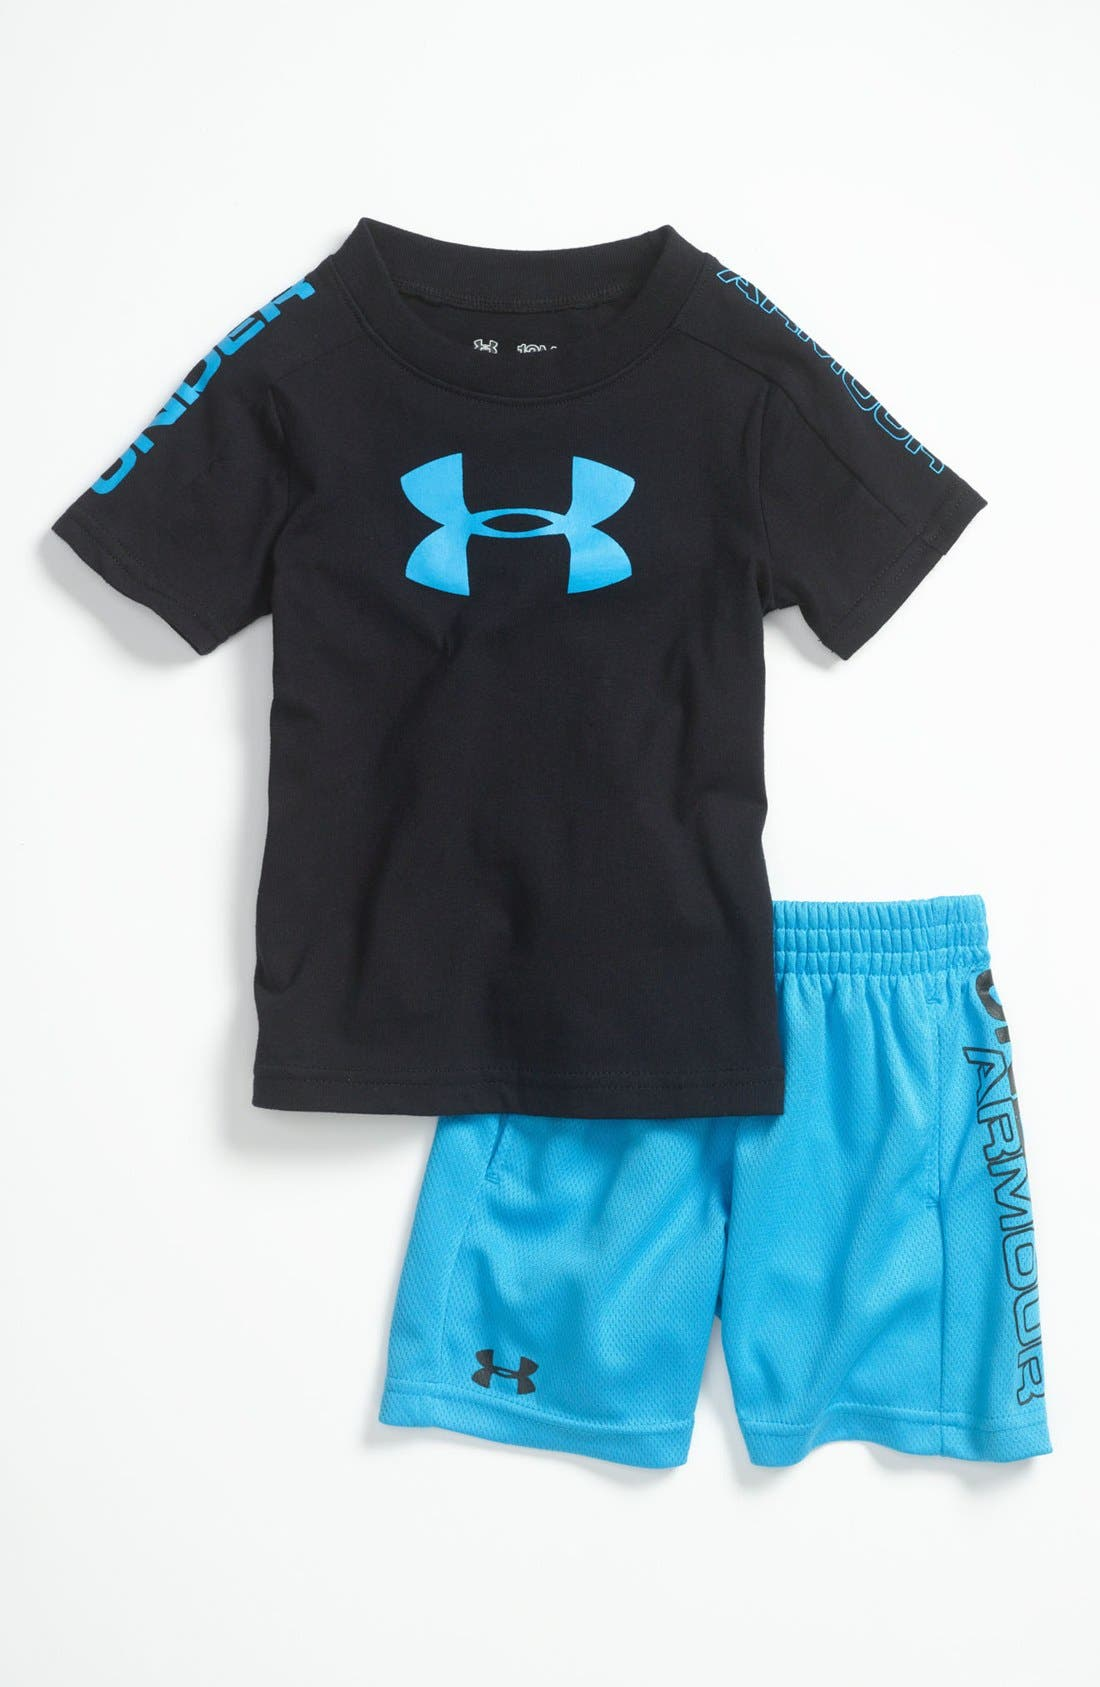 Alternate Image 1 Selected - Under Armour 'Integrity 2.0' T-Shirt & Shorts (Baby)